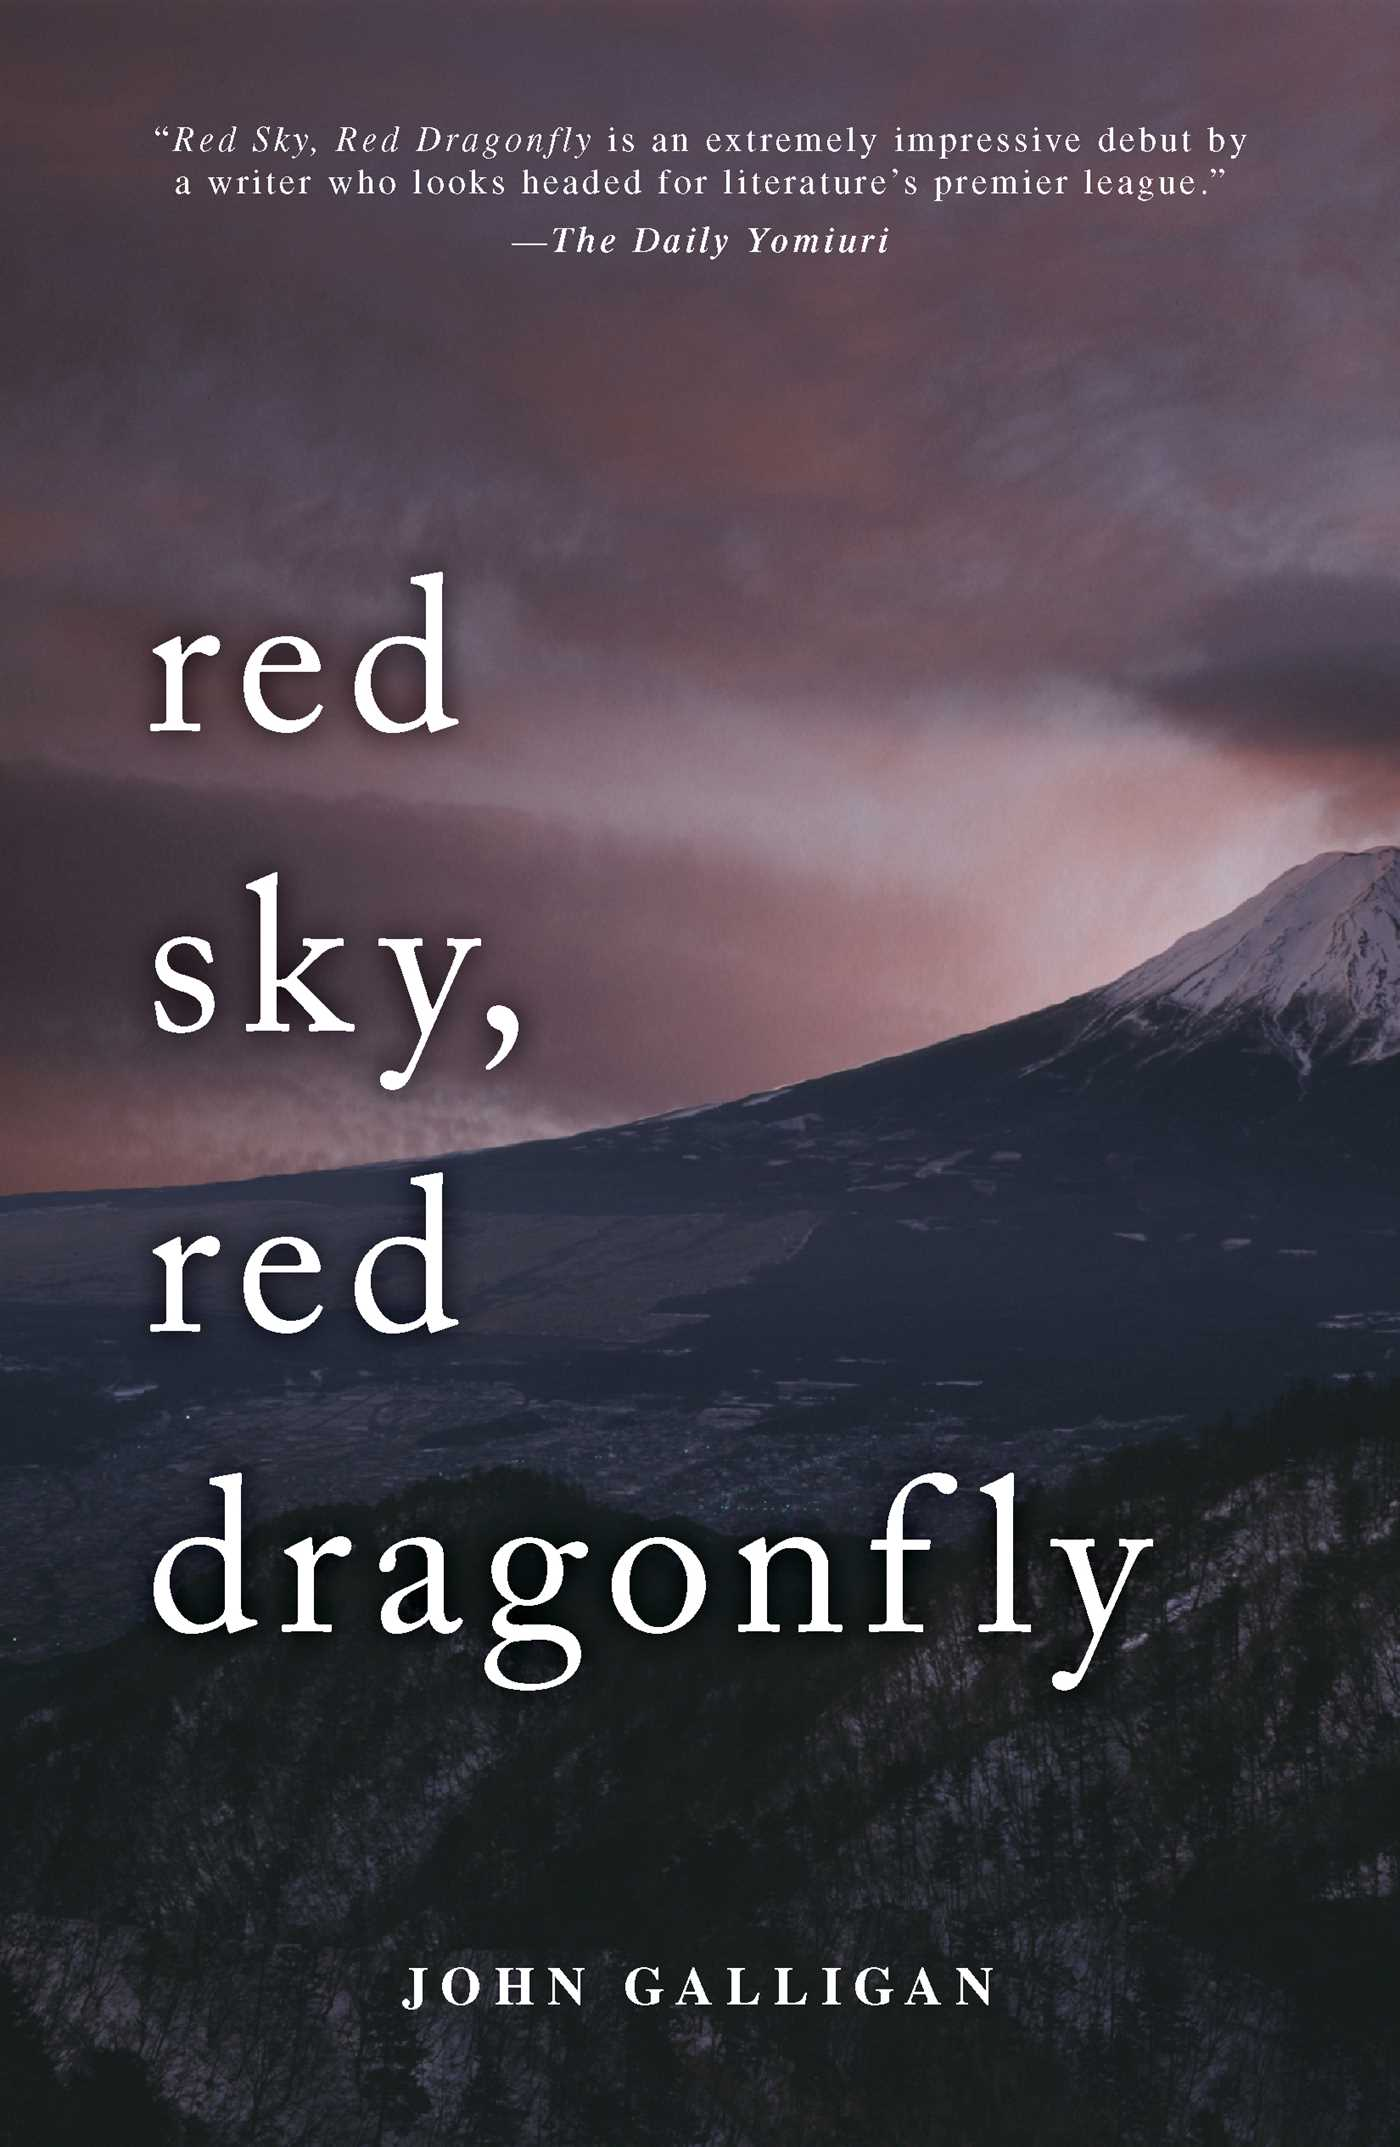 Red Ski, Red Dragonfly - book cover